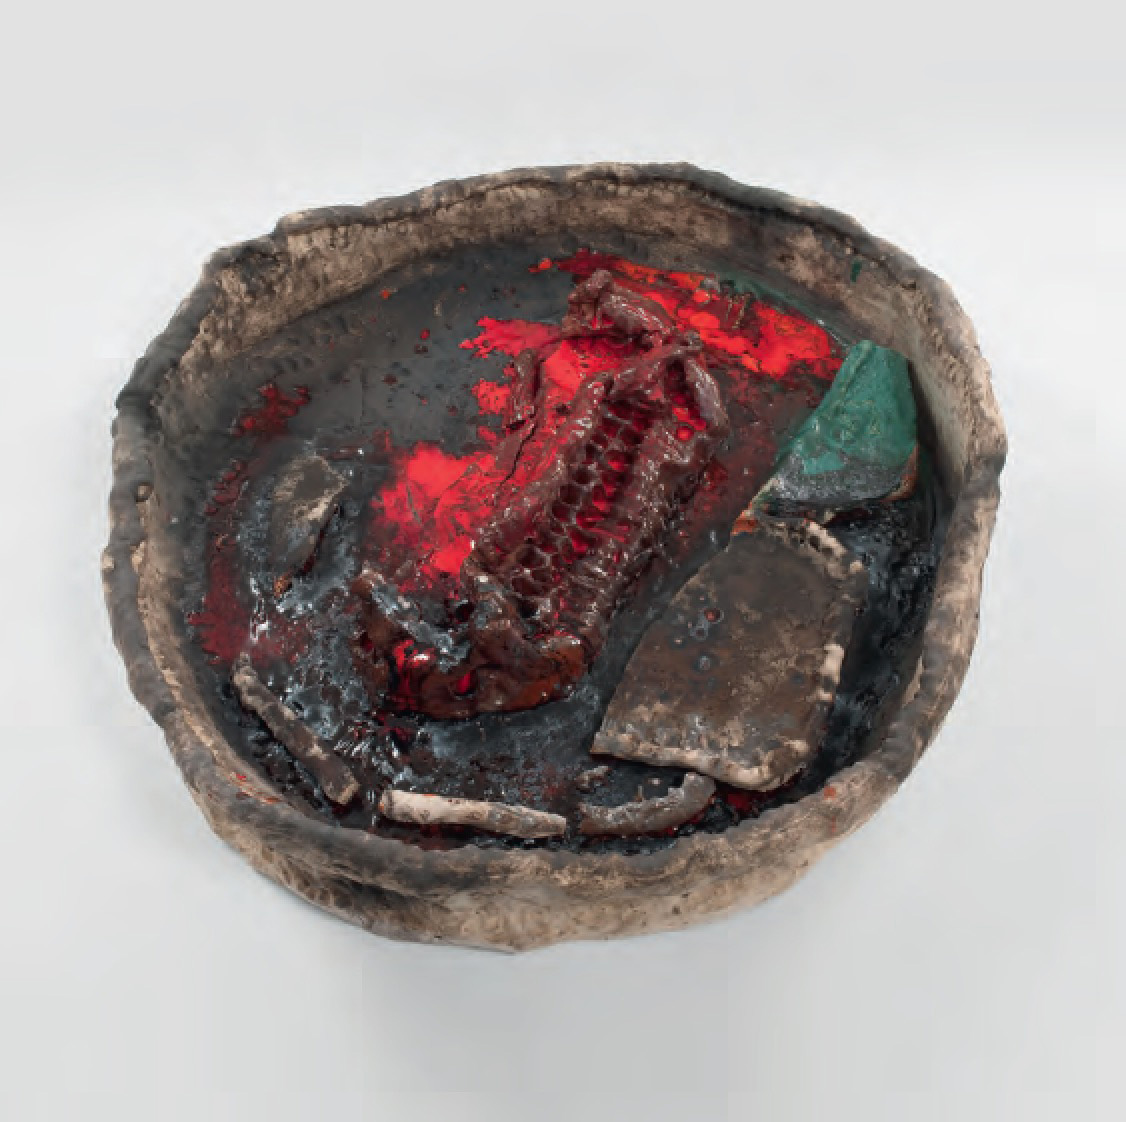 Basin Theology/Camp Routh, 2011 Ceramic - Sterling Ruby - Courtesy Sterling Ruby Studio. Photo: Robert Wedemeyer